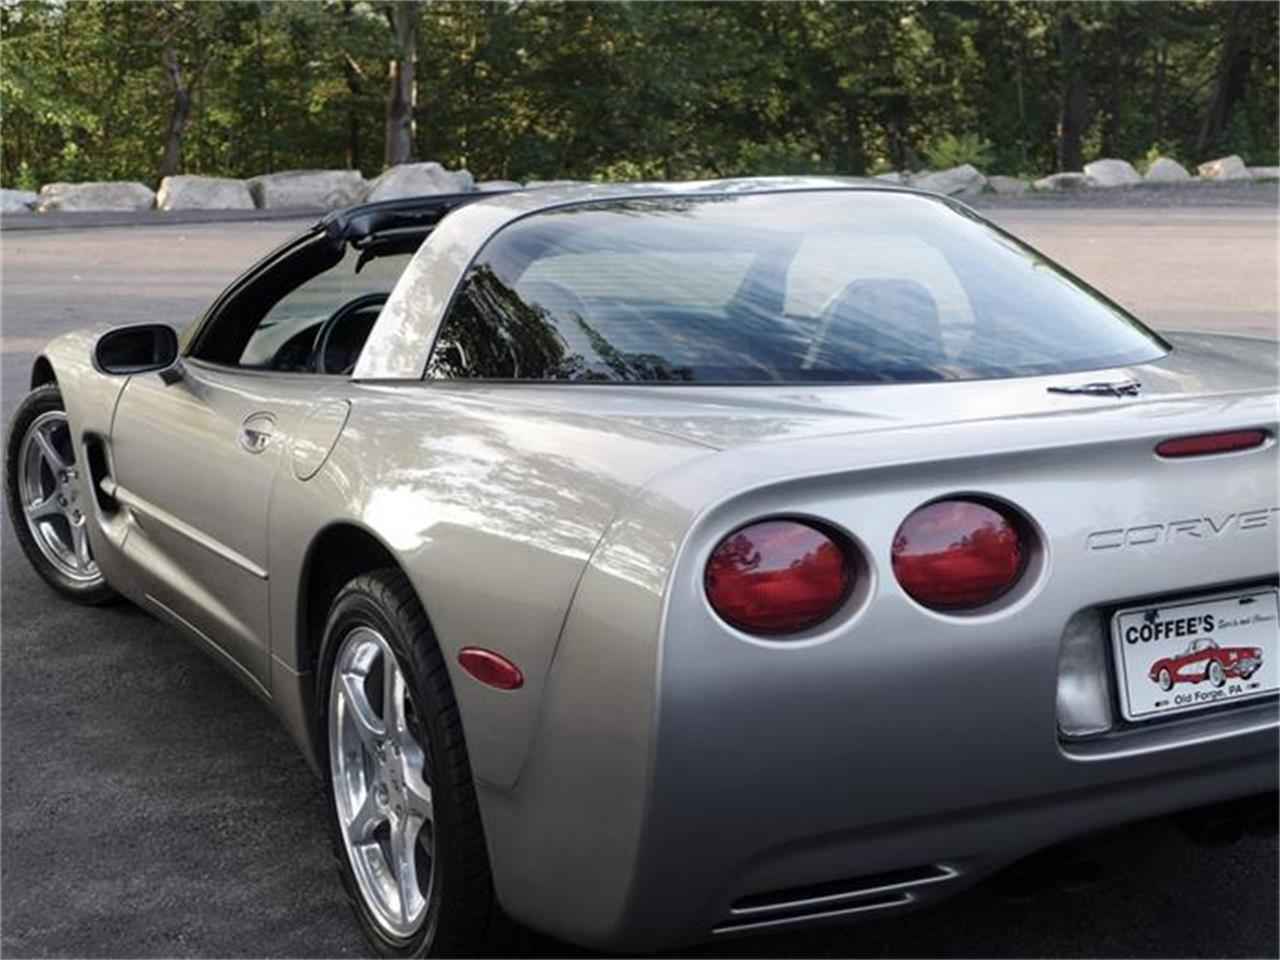 Large Picture of 1999 Chevrolet Corvette Offered by Coffee's Sports and Classics - HB0J